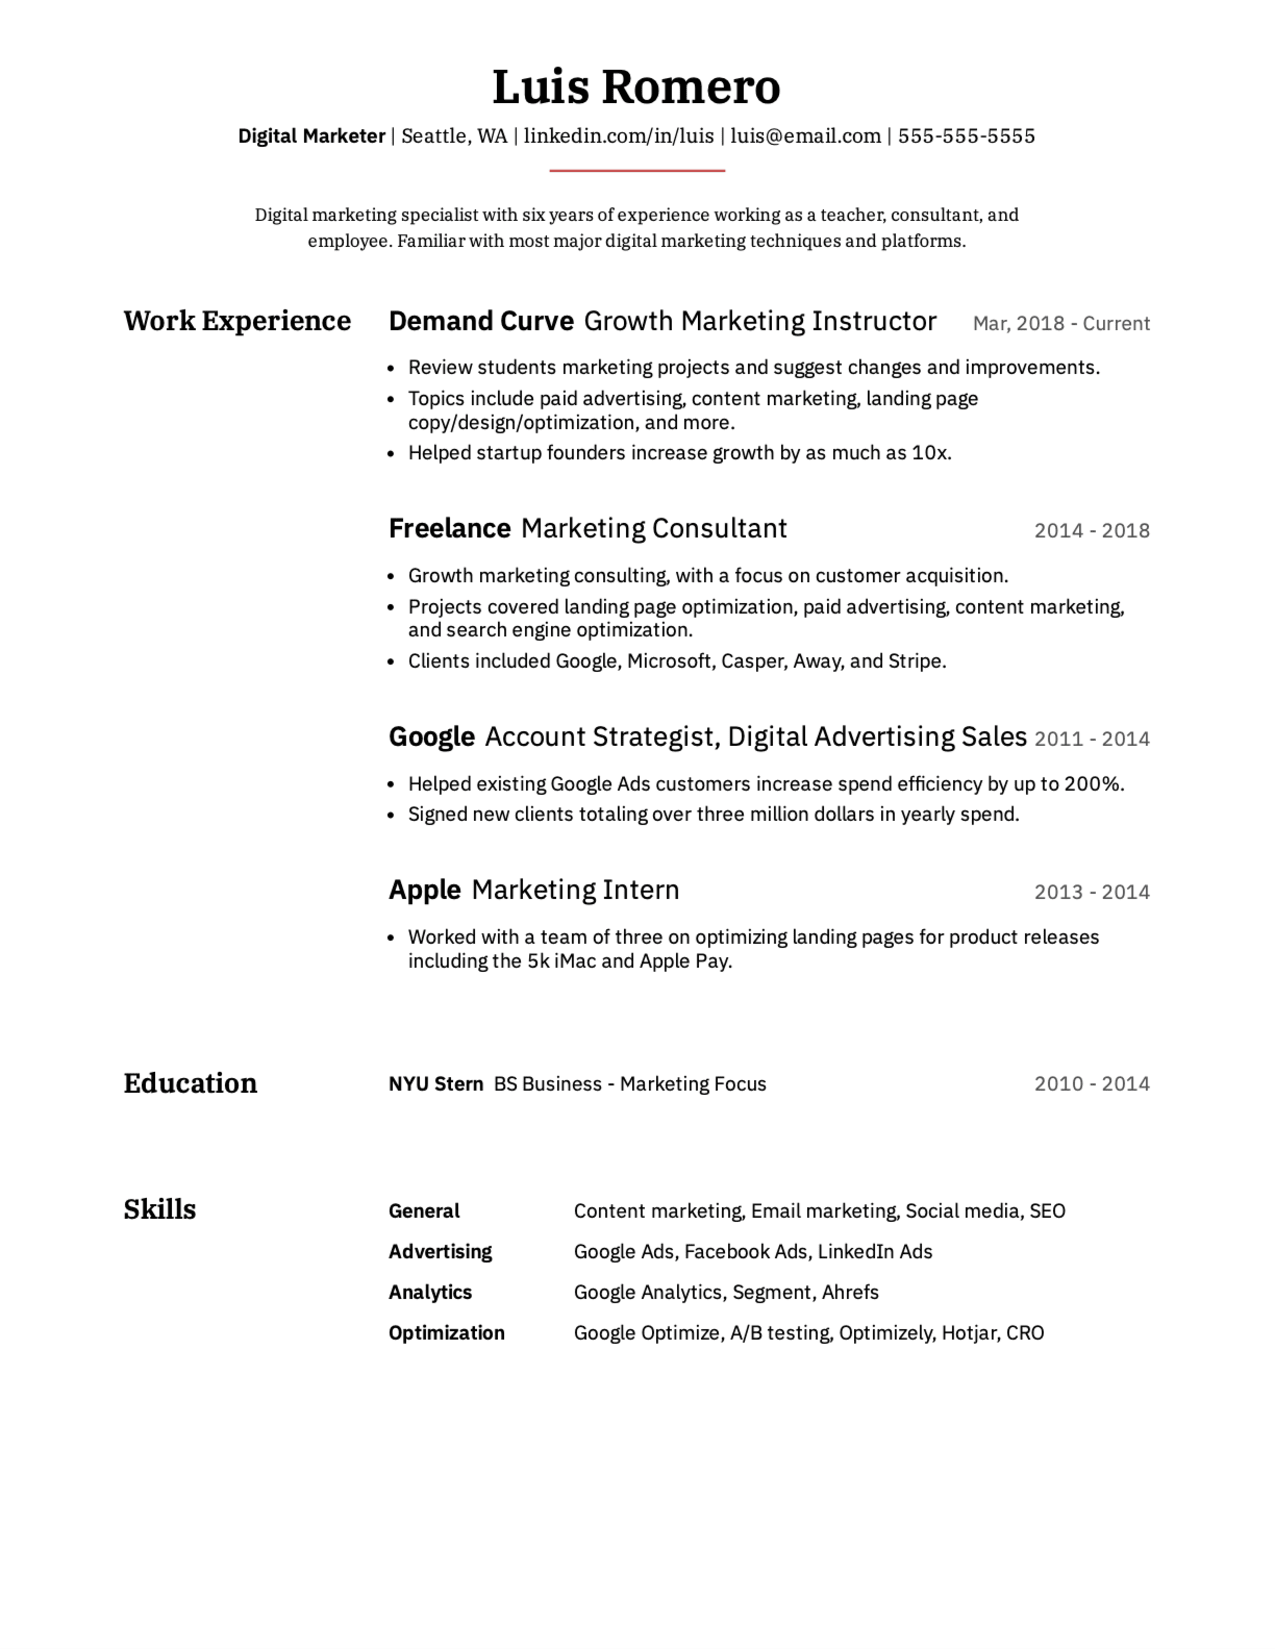 Professional Digital Marketer resume sample.